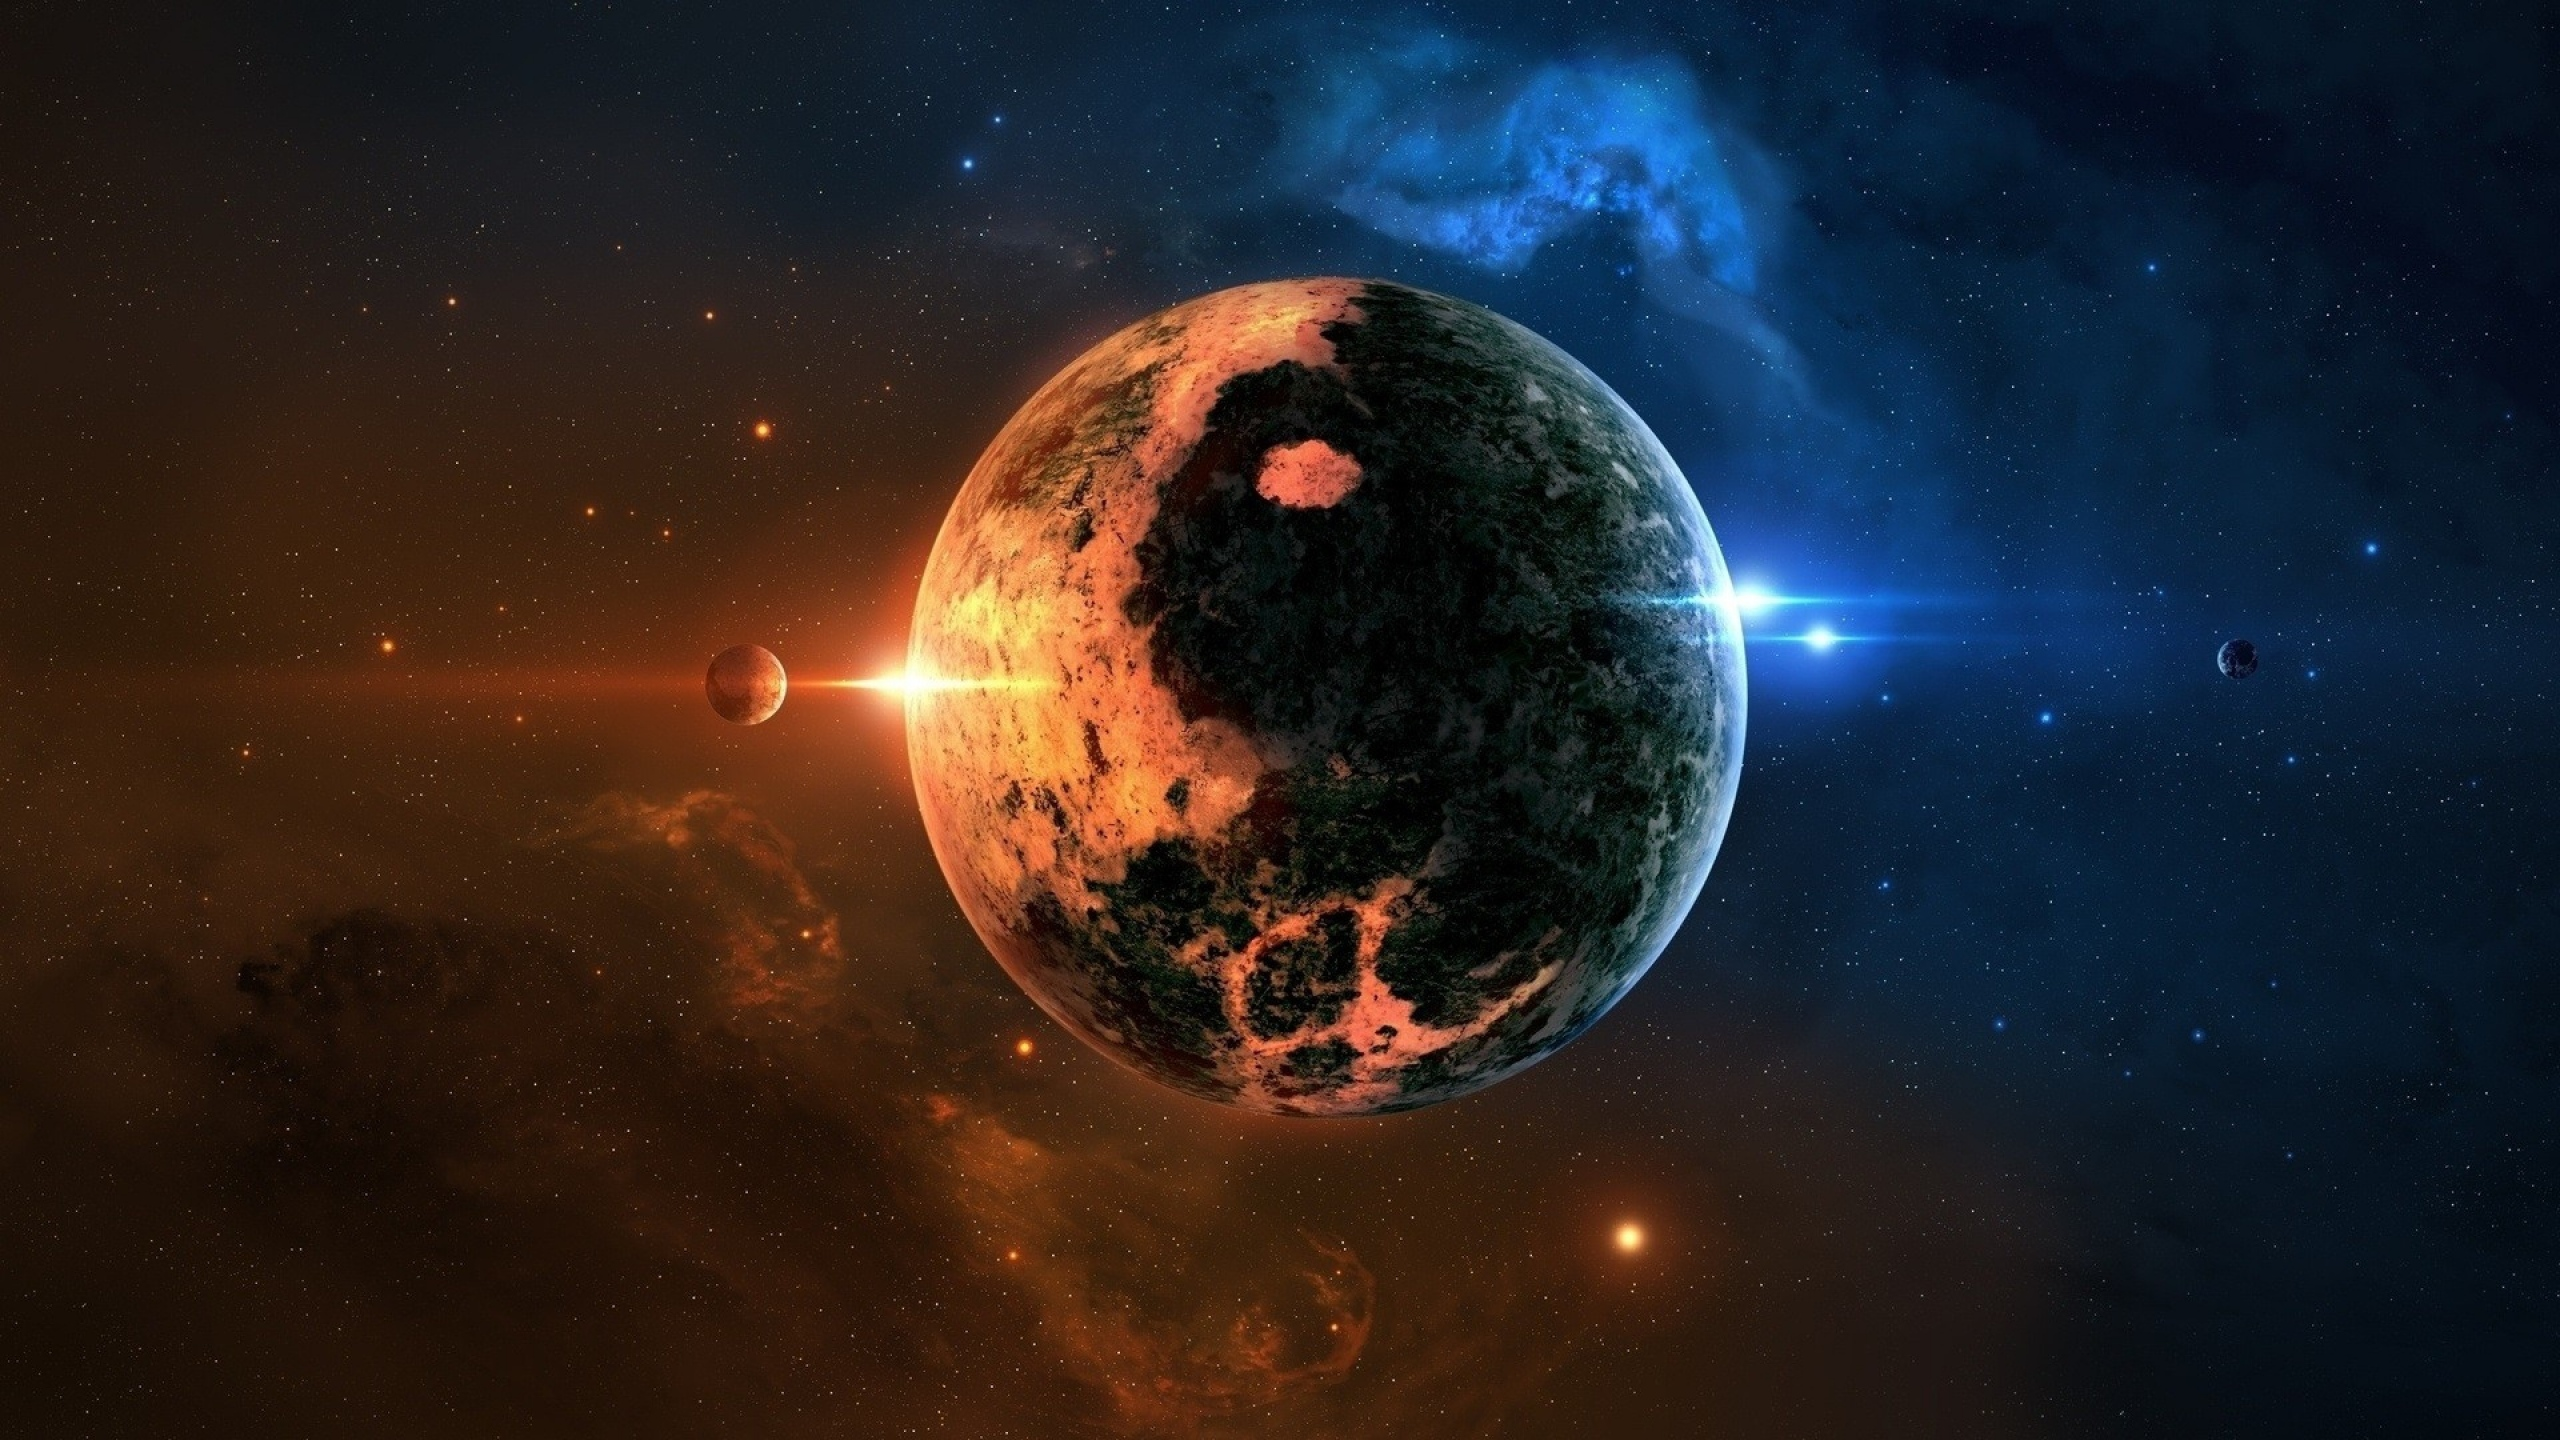 2560x1440 Wallpaper space planet background 2560x1440